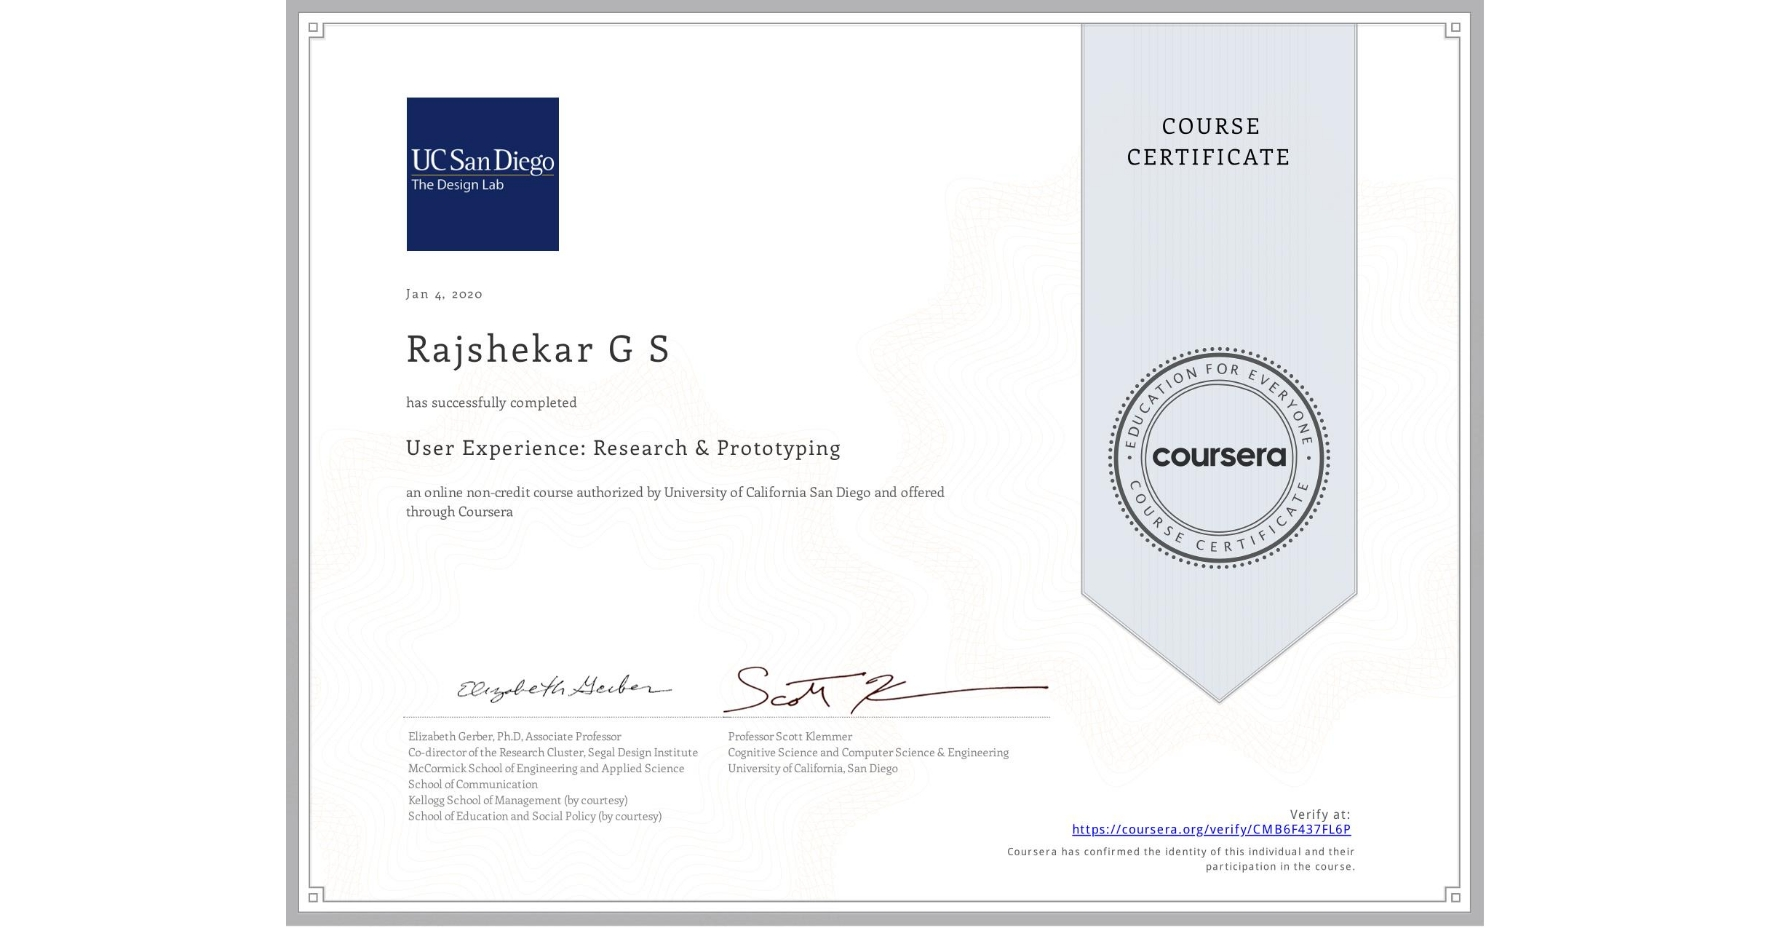 View certificate for Rajshekar G S, User Experience: Research & Prototyping, an online non-credit course authorized by University of California San Diego and offered through Coursera